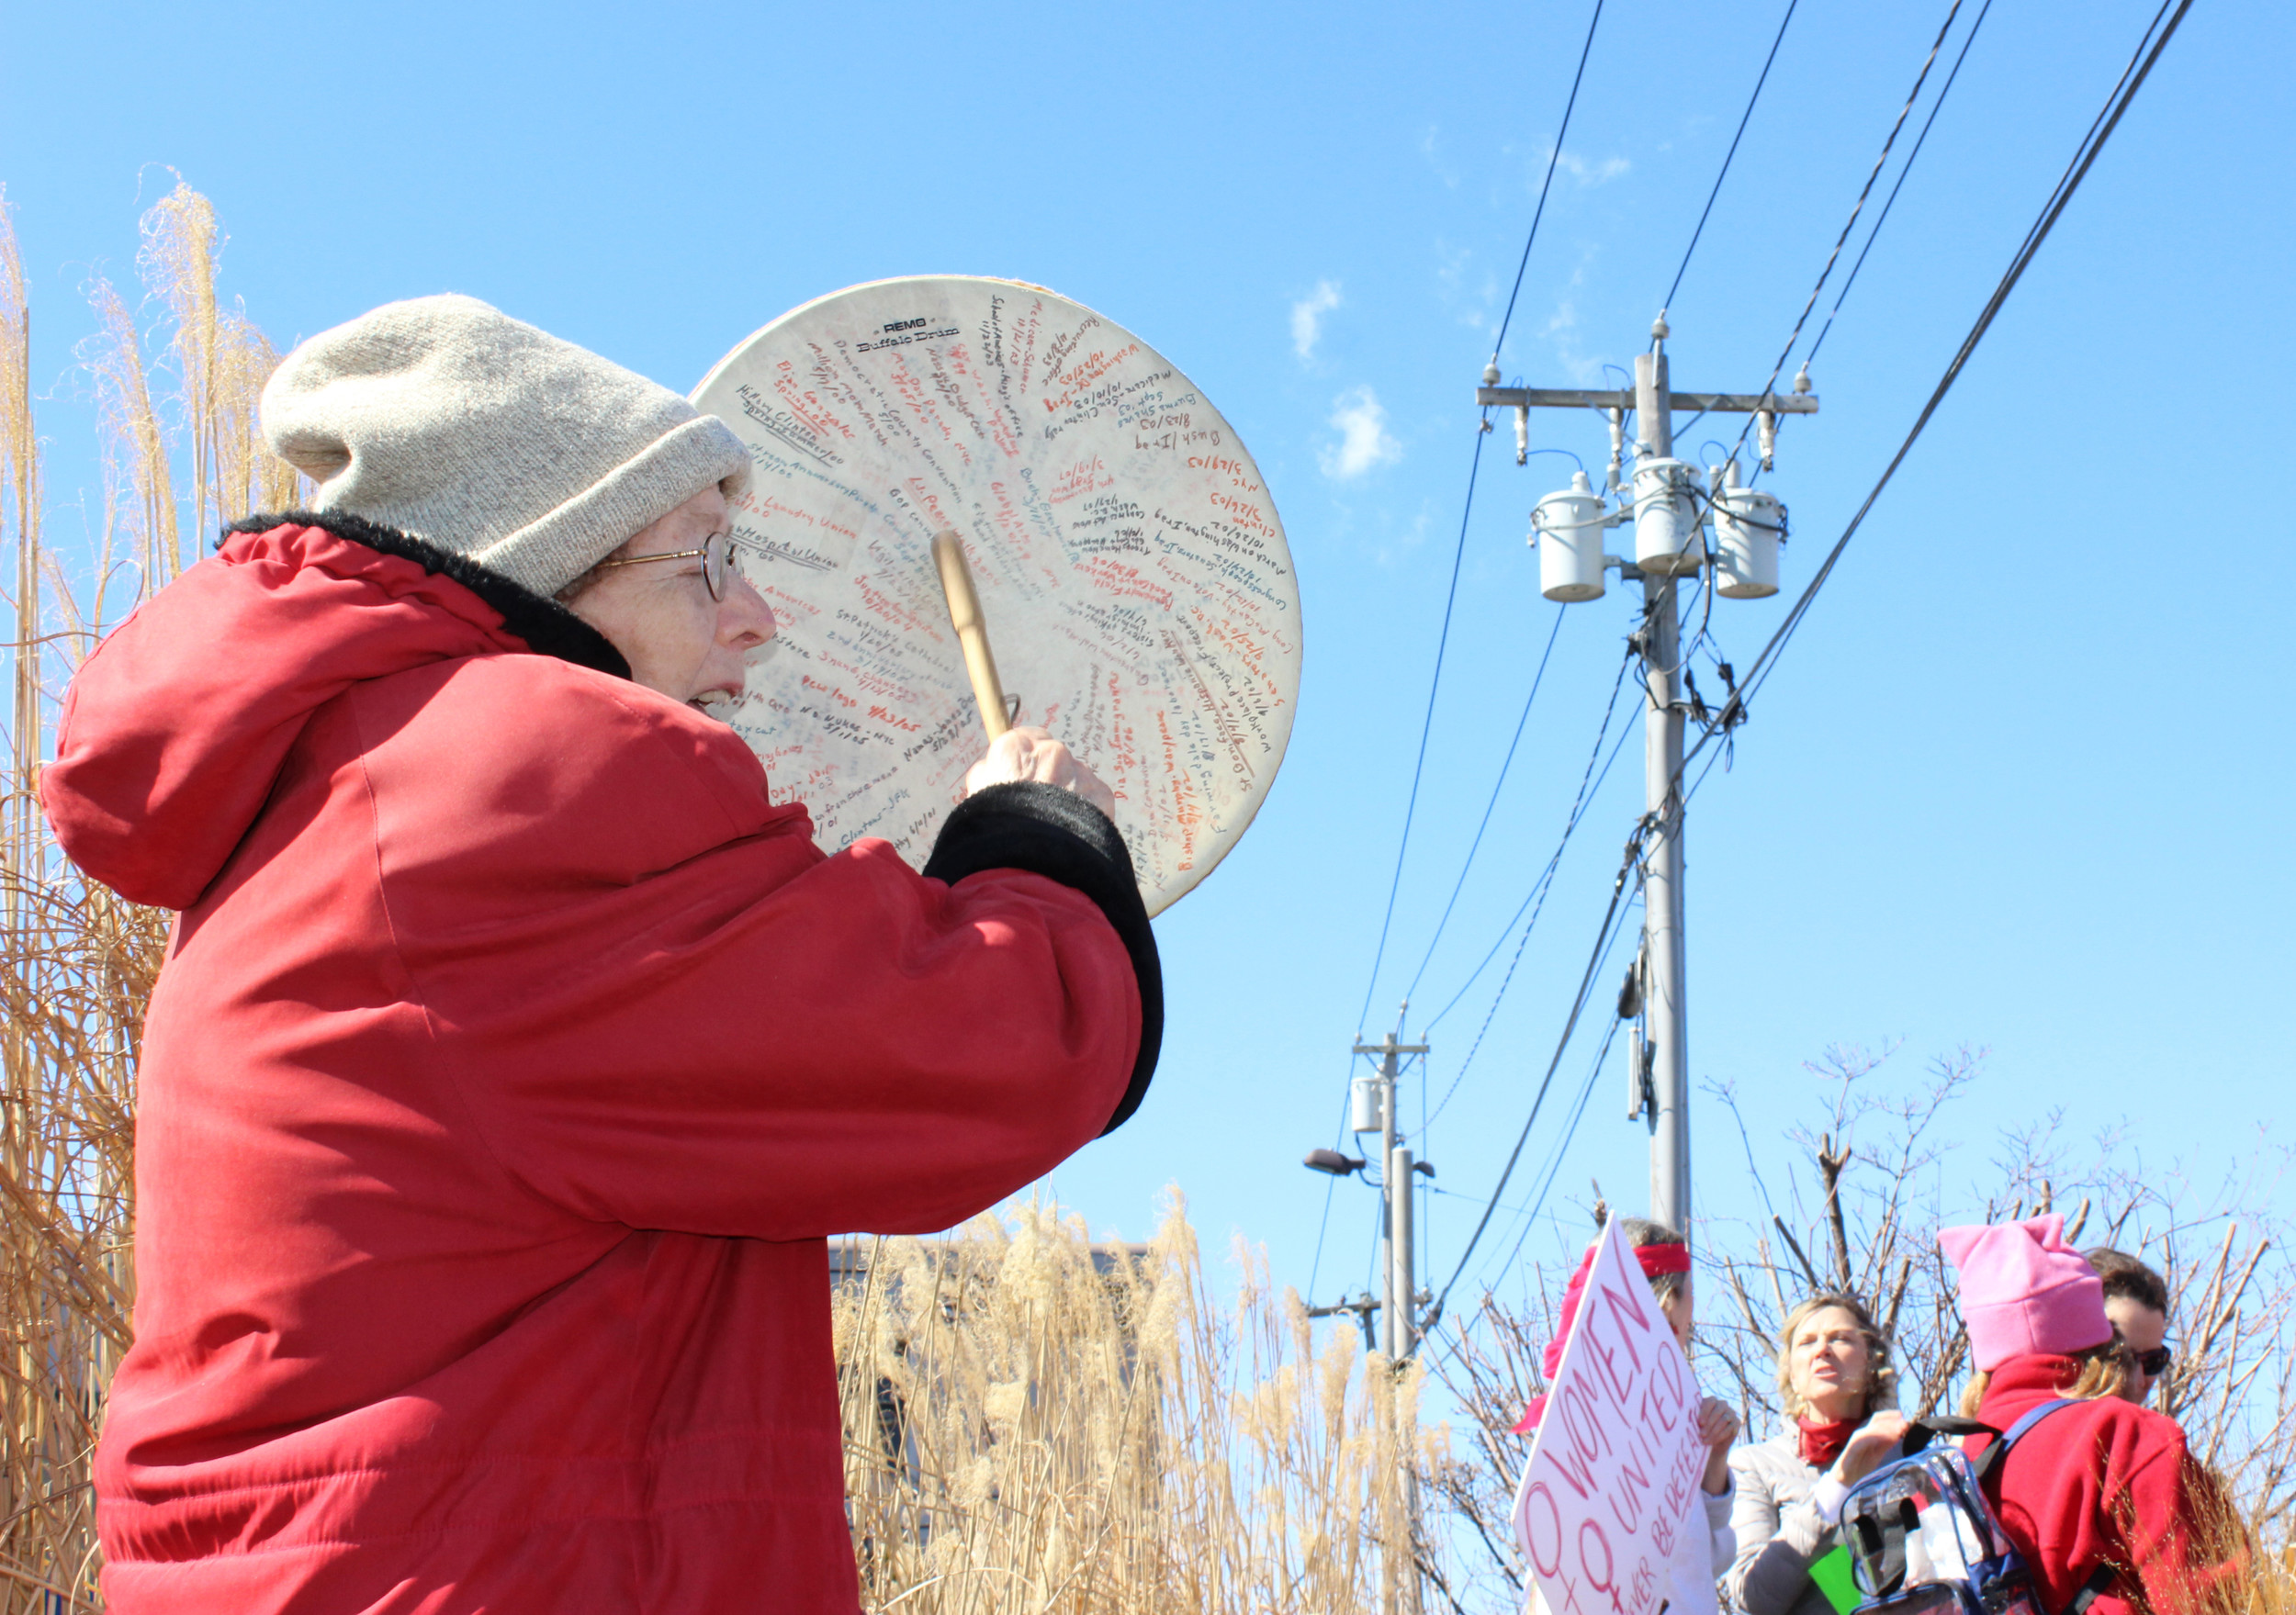 Nancy Dwyer, 82, has been attending local rallies since 1999. She marks the date of each protest on a handheld drum and bangs it to grab the attention of passersby.